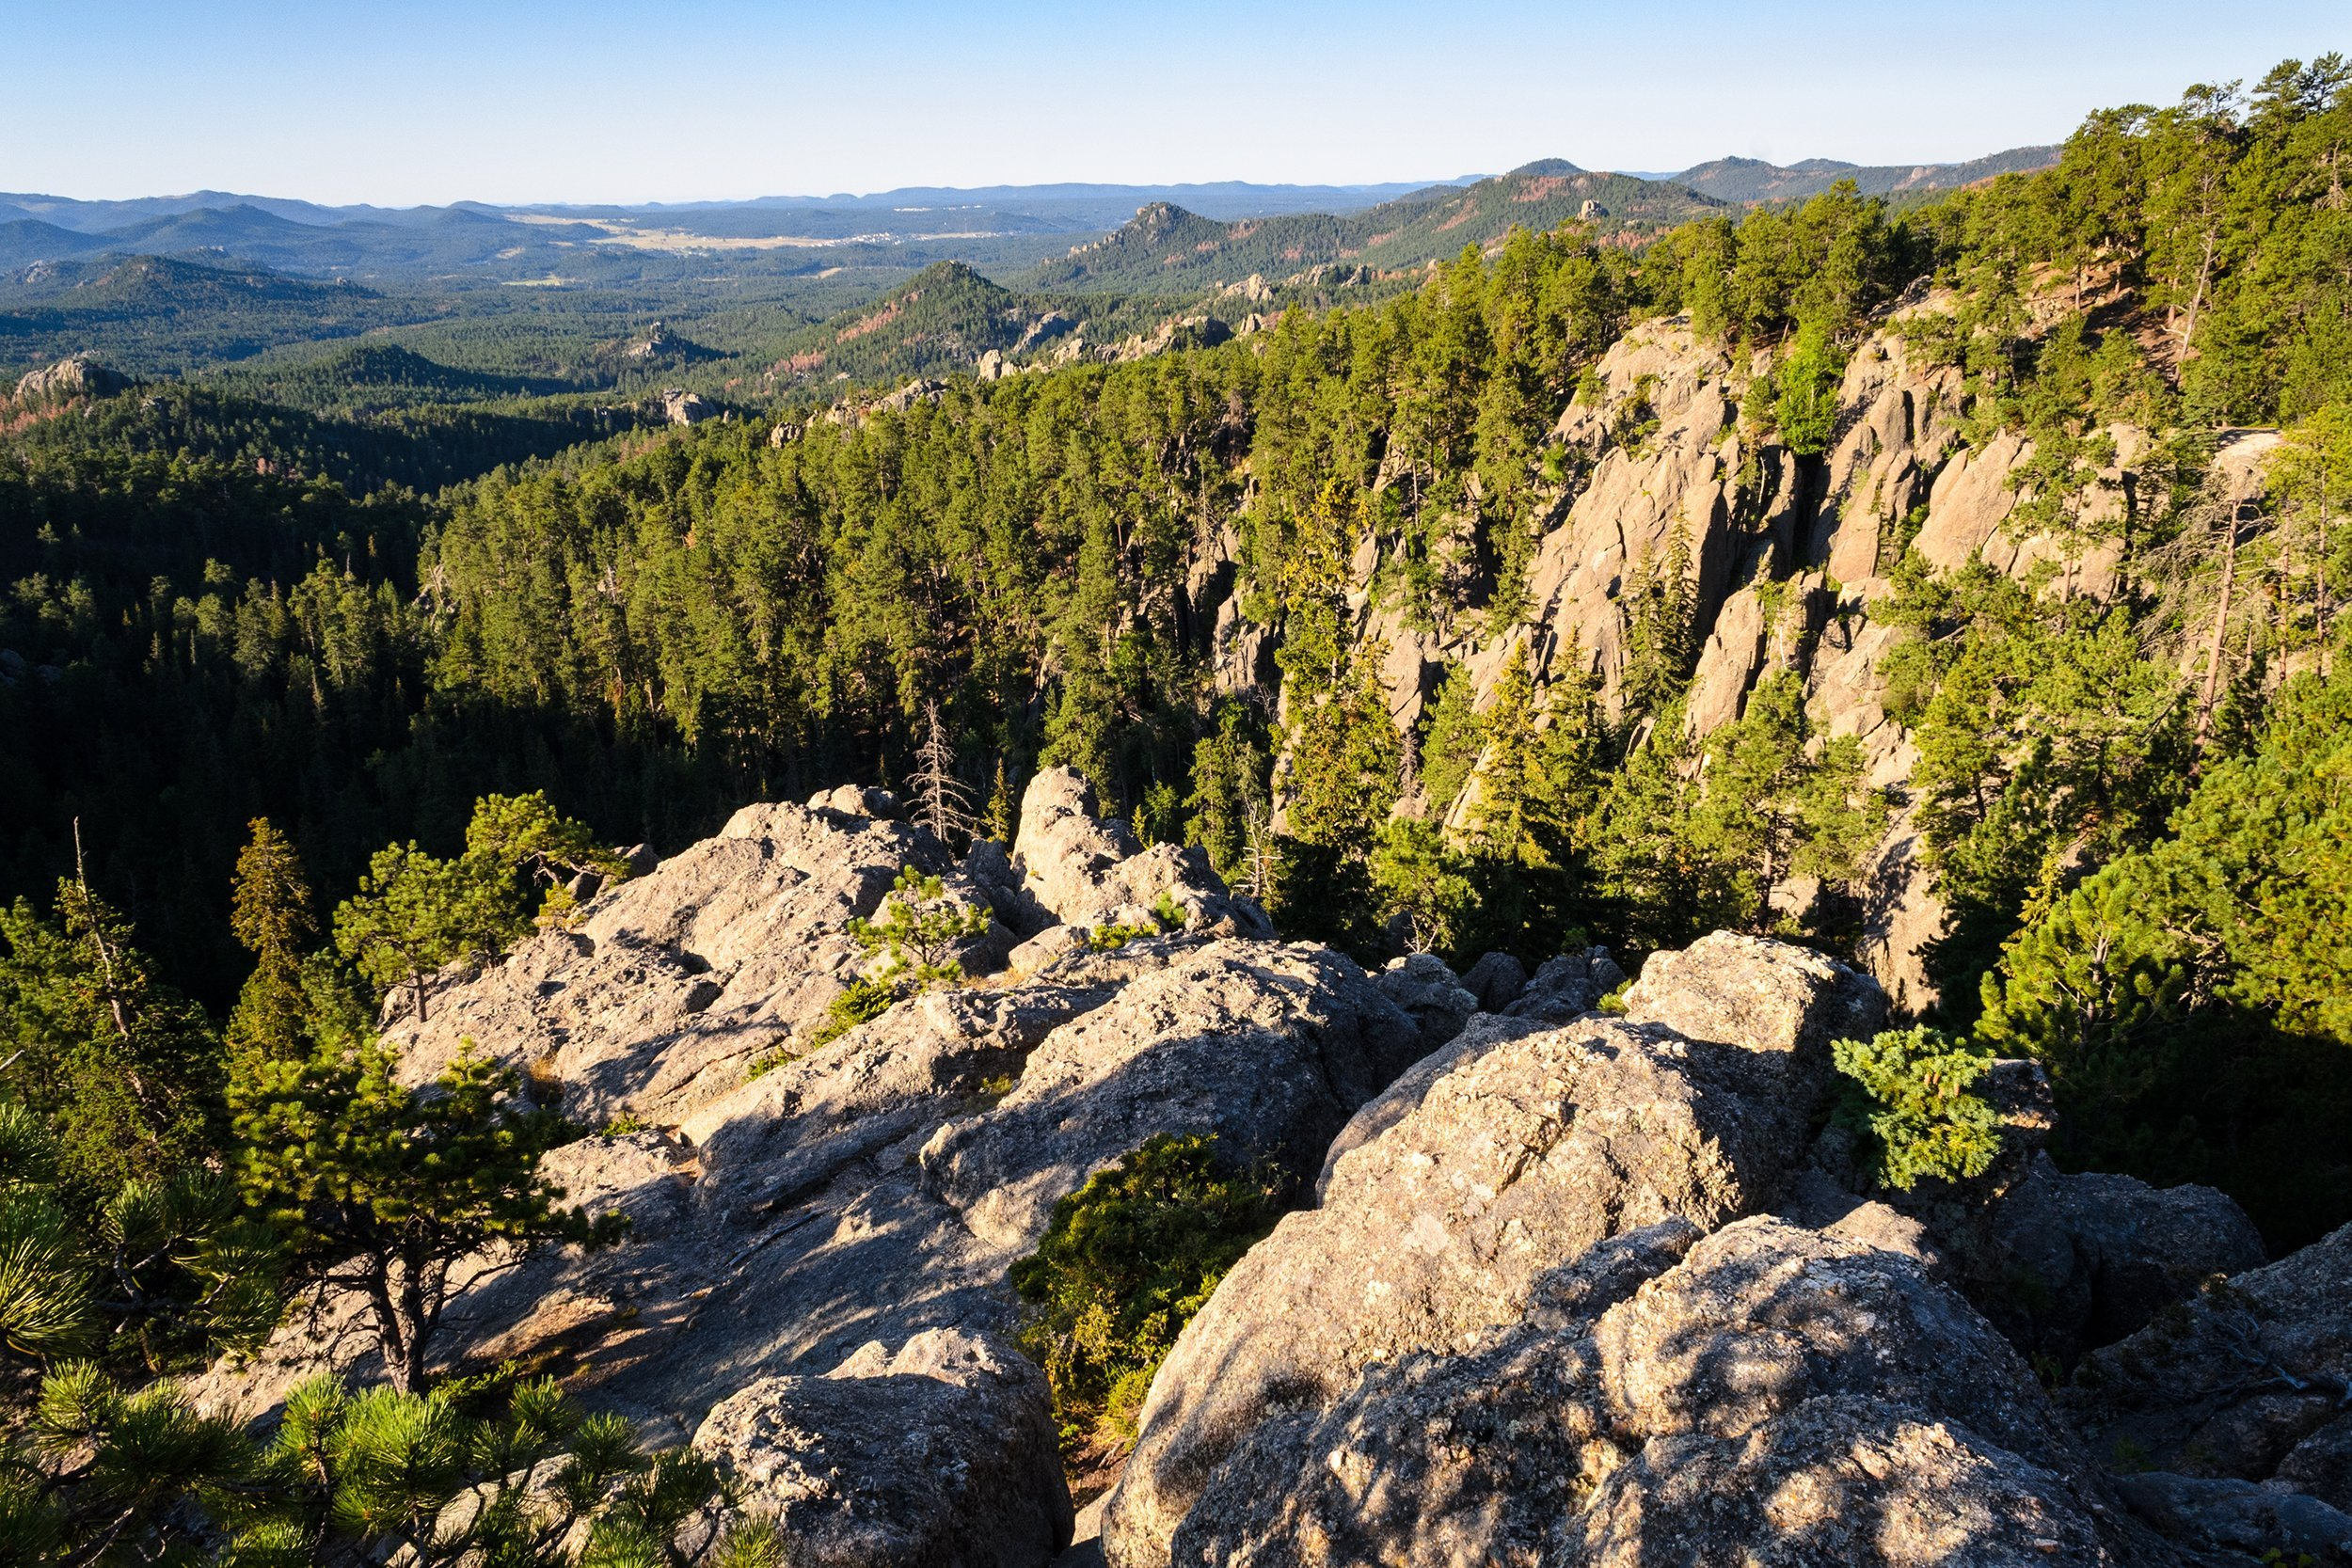 Slide 42 of 52:  Where: Black Hills National Forest Distance: 5.9 miles out and back Must see: Look out for wild turkeys and deer along the way on your way up the peak. Once you've reached the peak, you'll get panoramic views of Black Hills Mountains, including Terry Peak and Bear Butte.